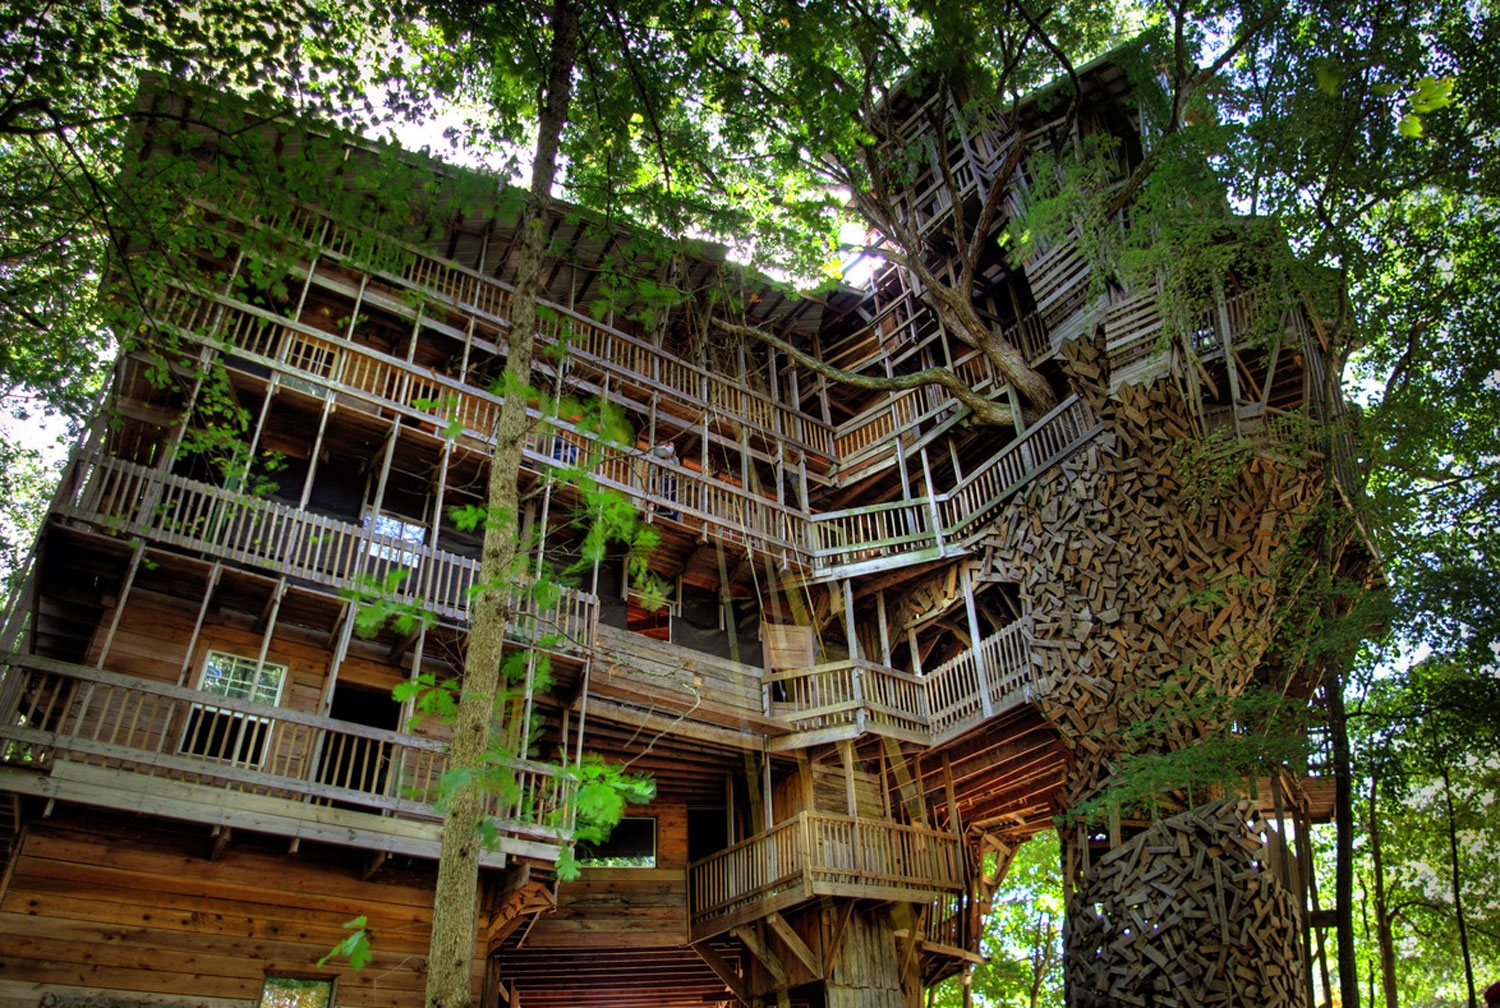 Minister's Tree House – Tennessee